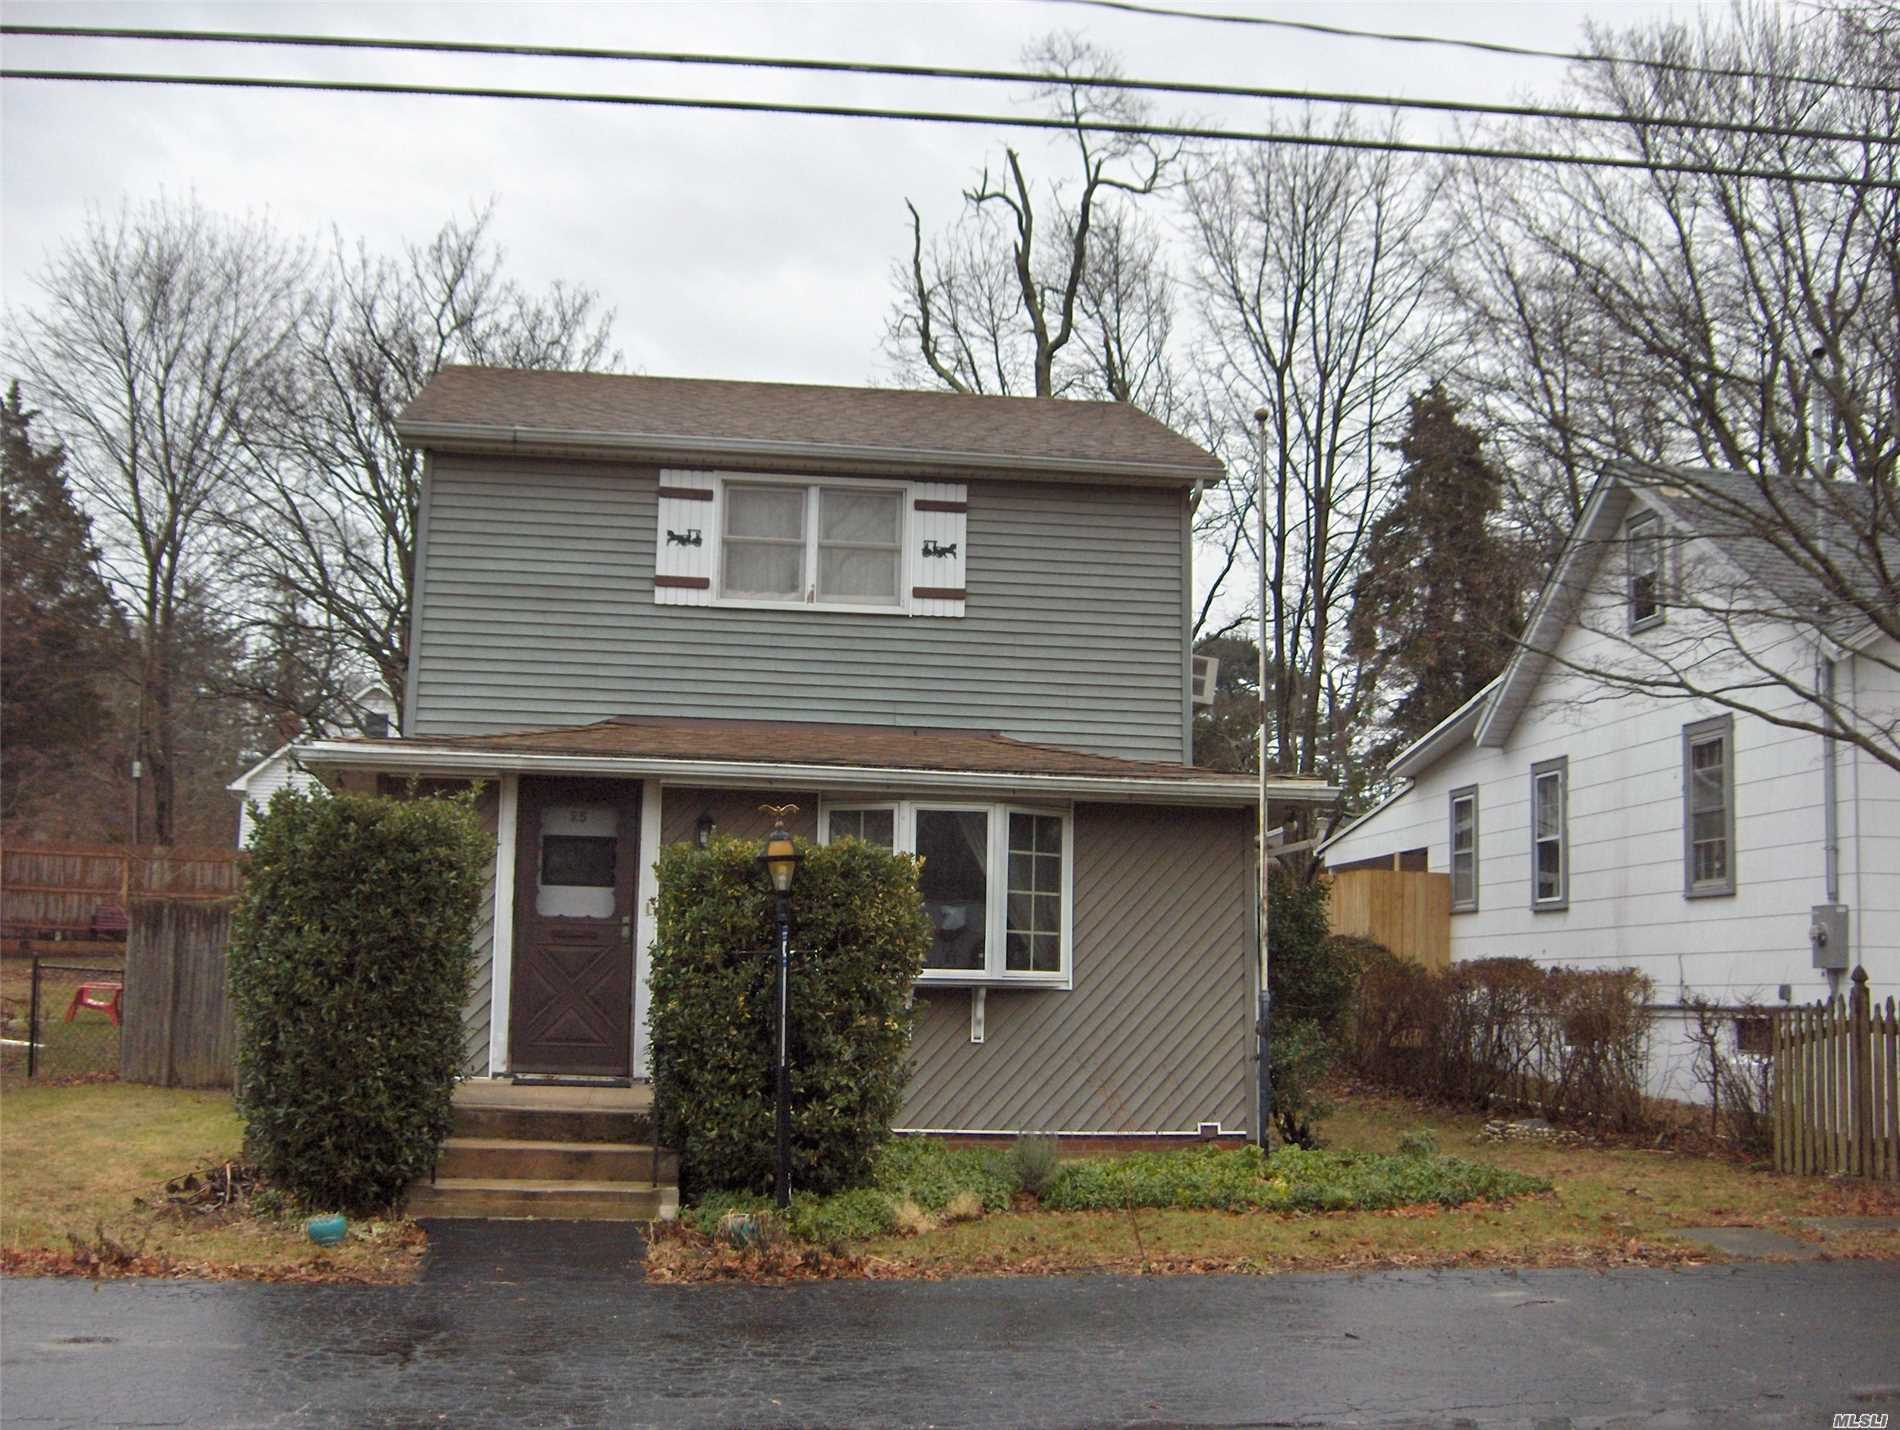 Charming Colonial On A Quiet Street One Block From The Beach. Perfect As A Starter Home Or For Someone Downsizing. Fully Sided, Newer Roof, Hardwood Floors, Huge Bedroom Can Be Divided Into Two, Full Basement W Outside Entrance. Detached Workshop (20X20).